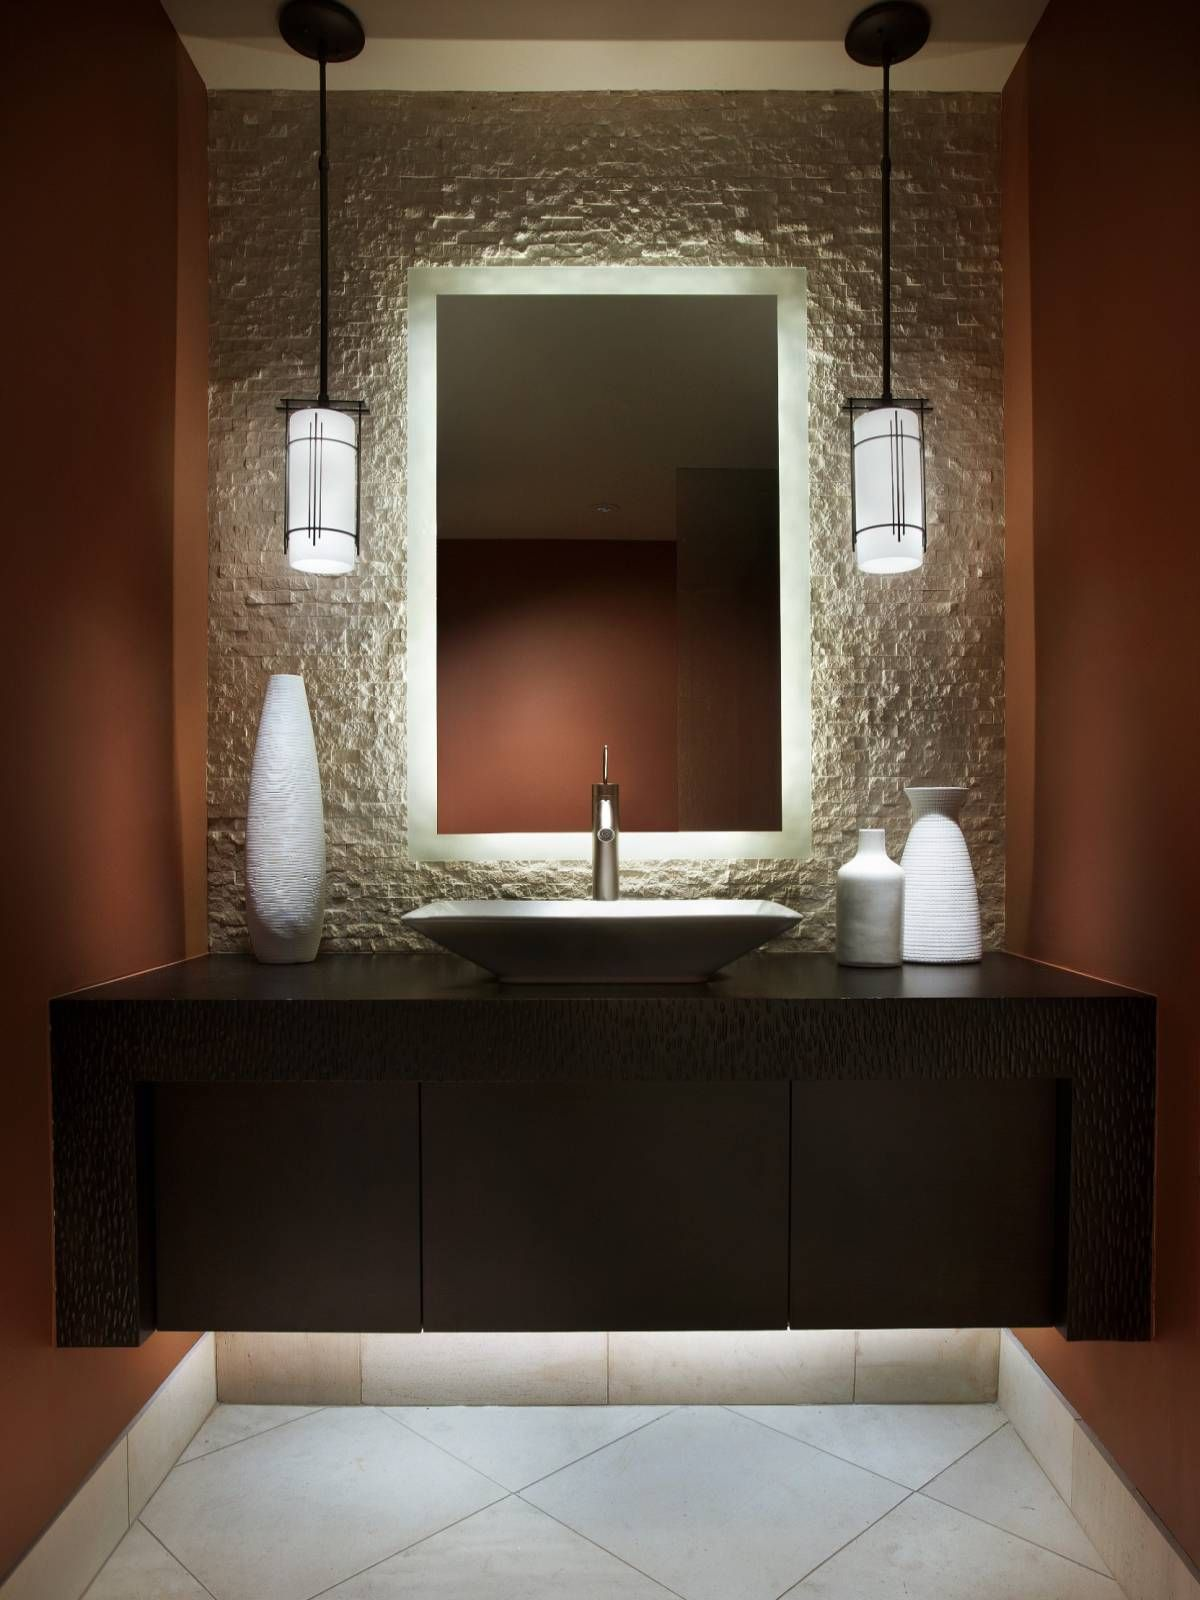 Small bathroom vanities and sink you can crunch into even for Wallpaper for small powder room